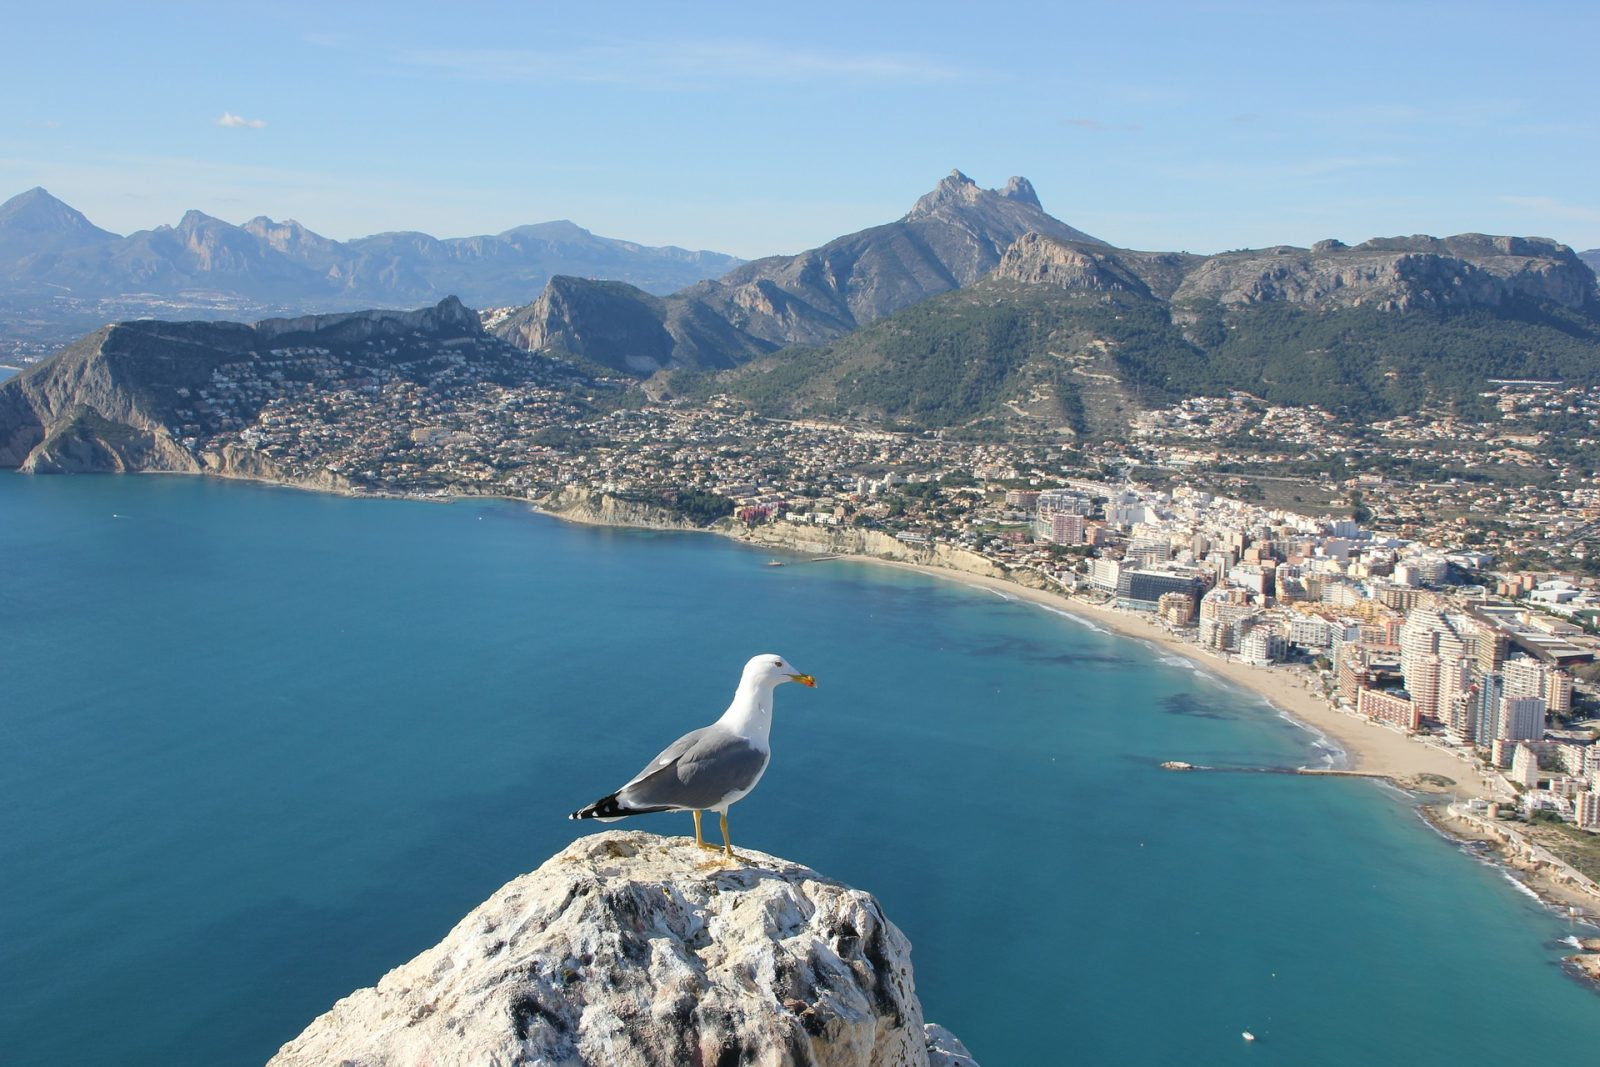 Why should you buy a home and move to the beautiful city of Alicante